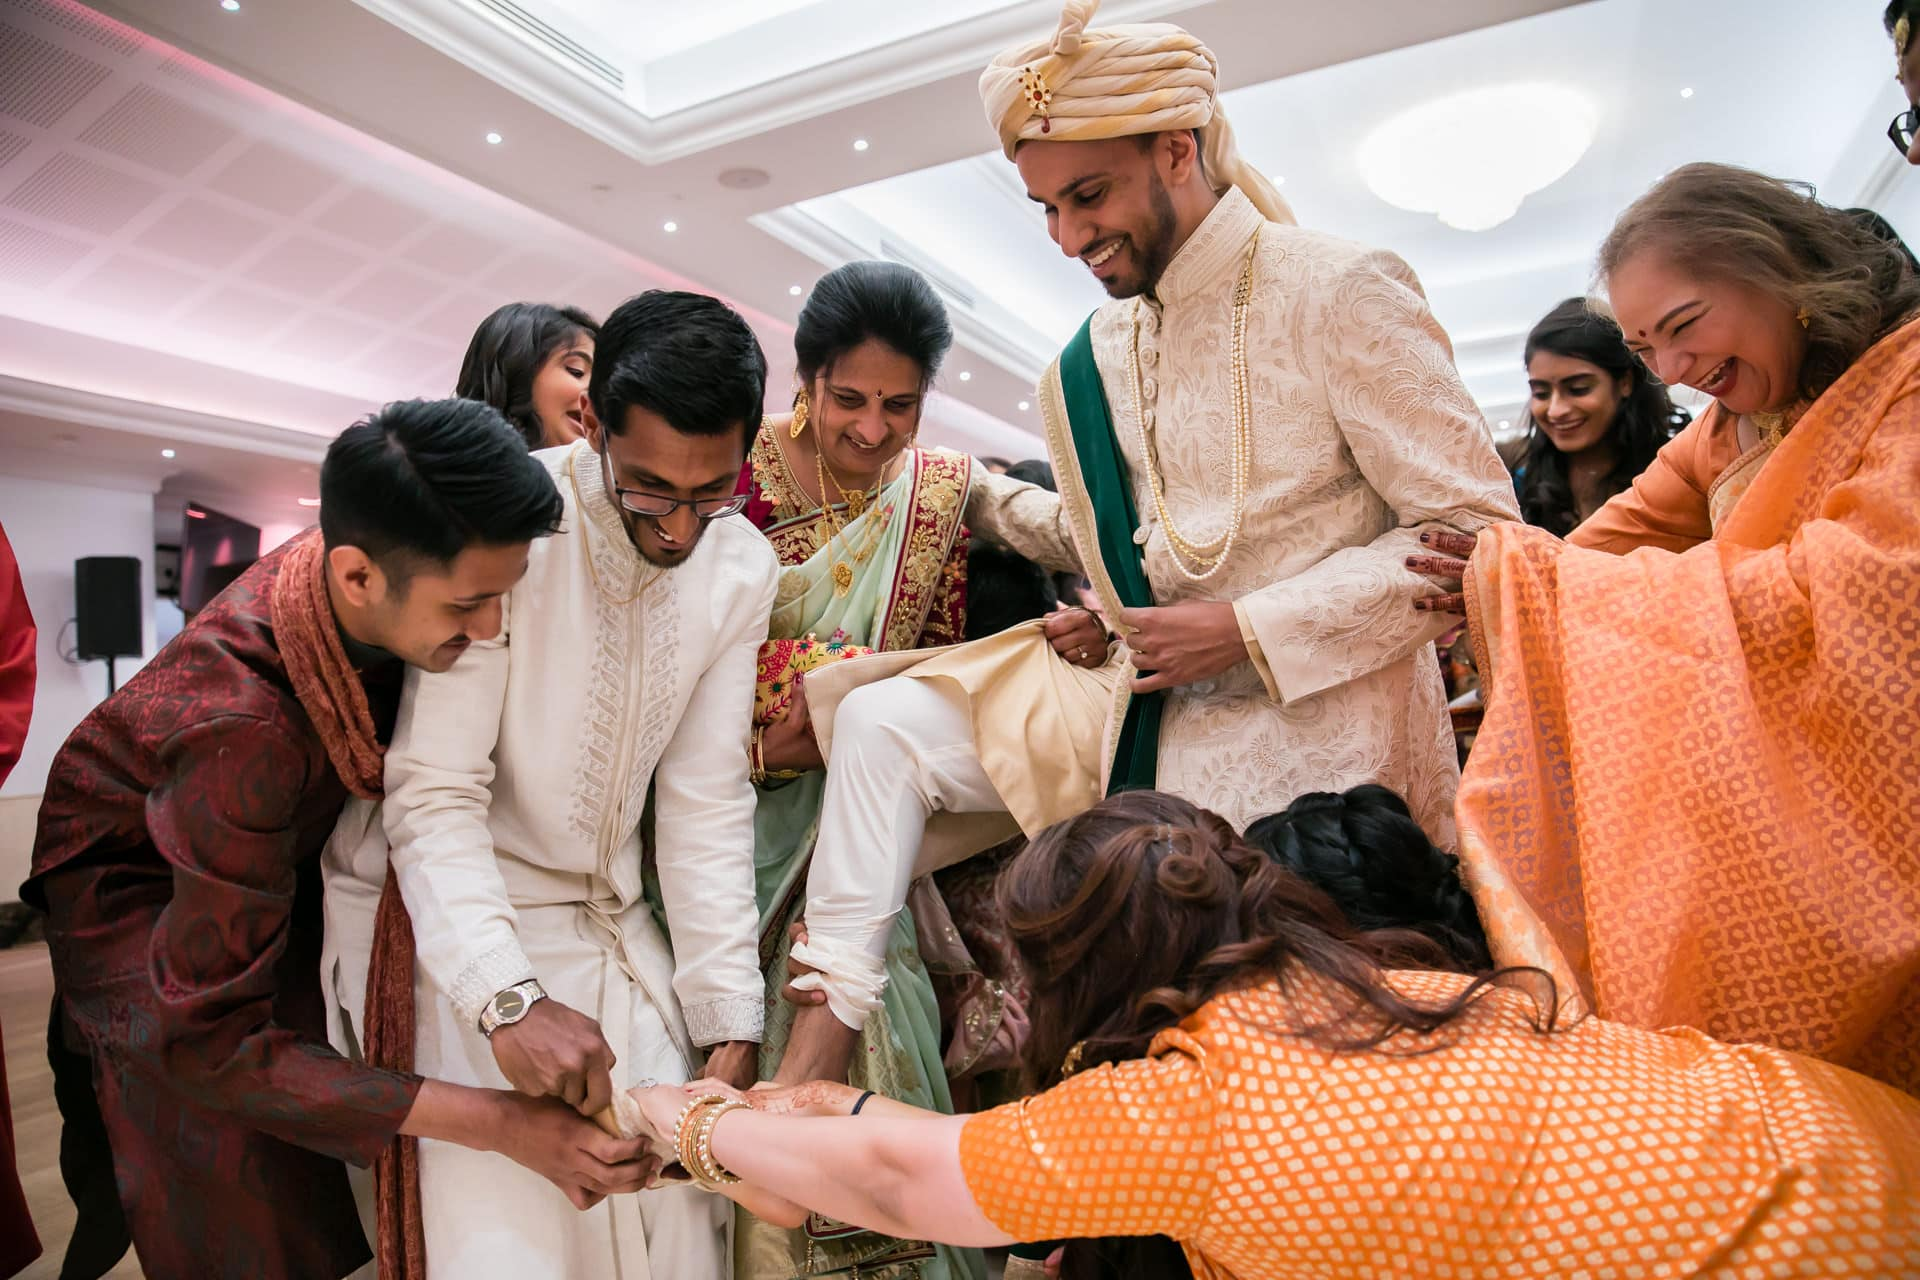 Hindu groom's wedding shoes getting stolen